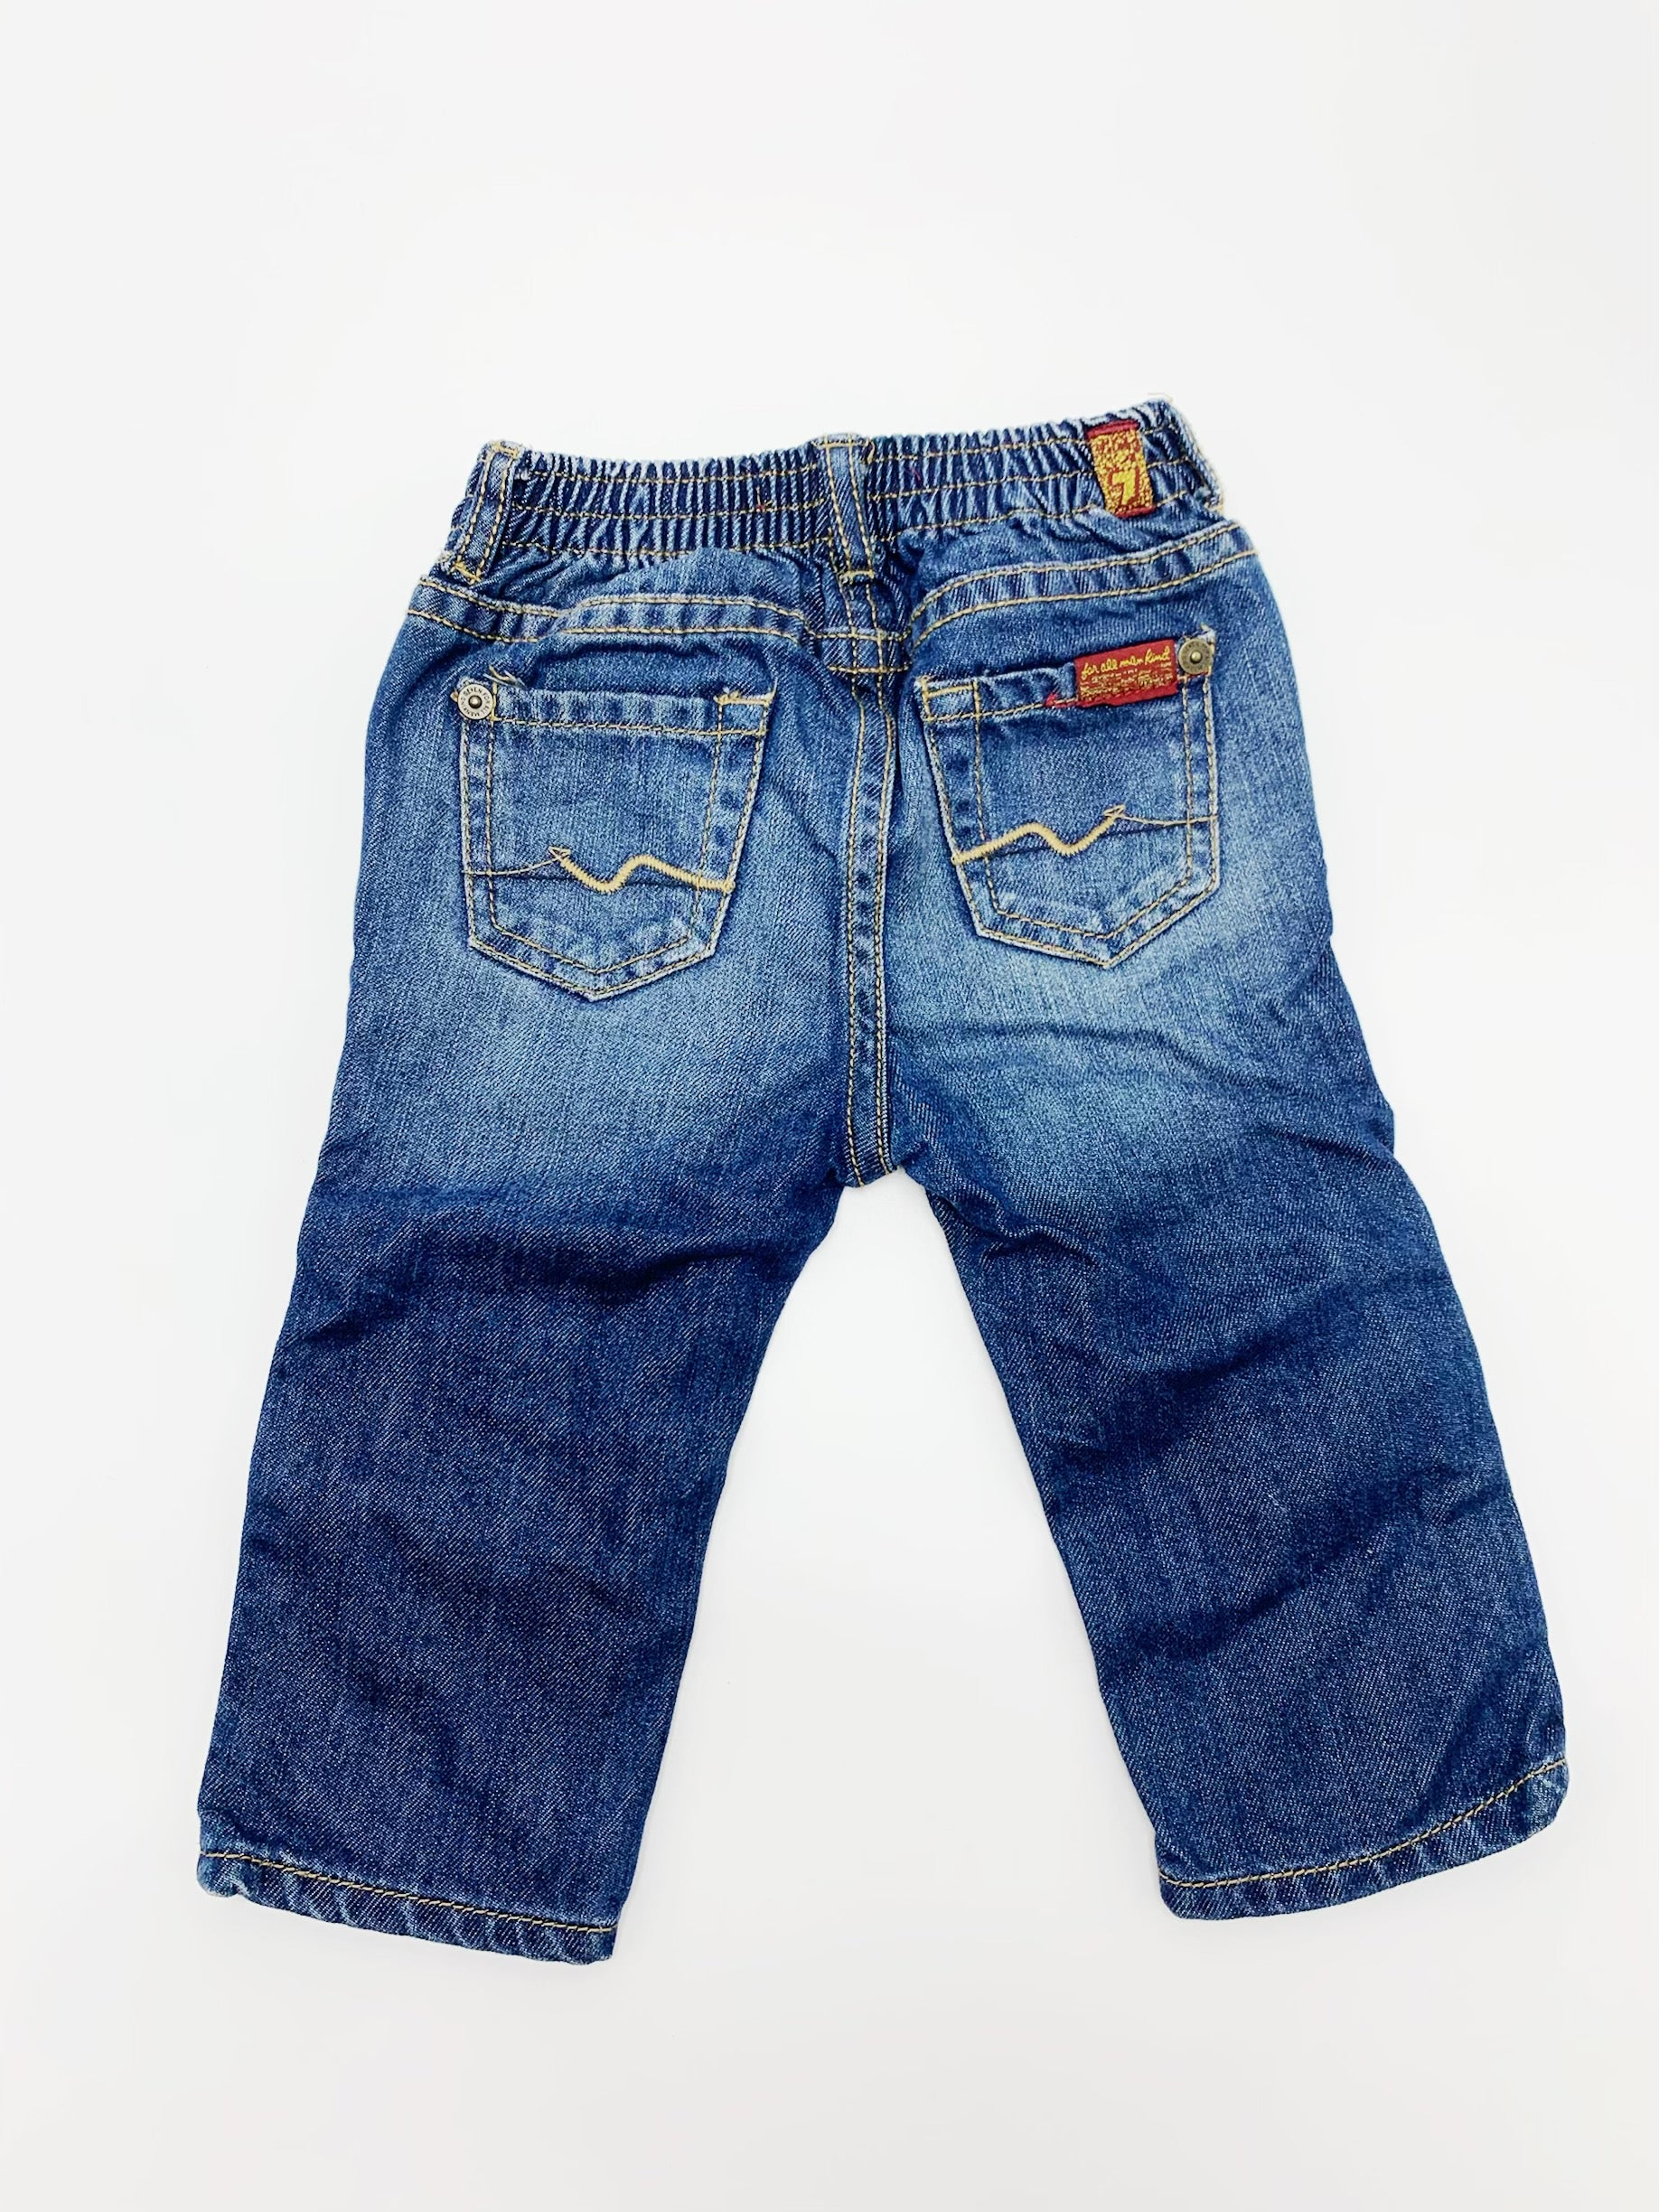 7 for All Mankind jeans size 6-9m